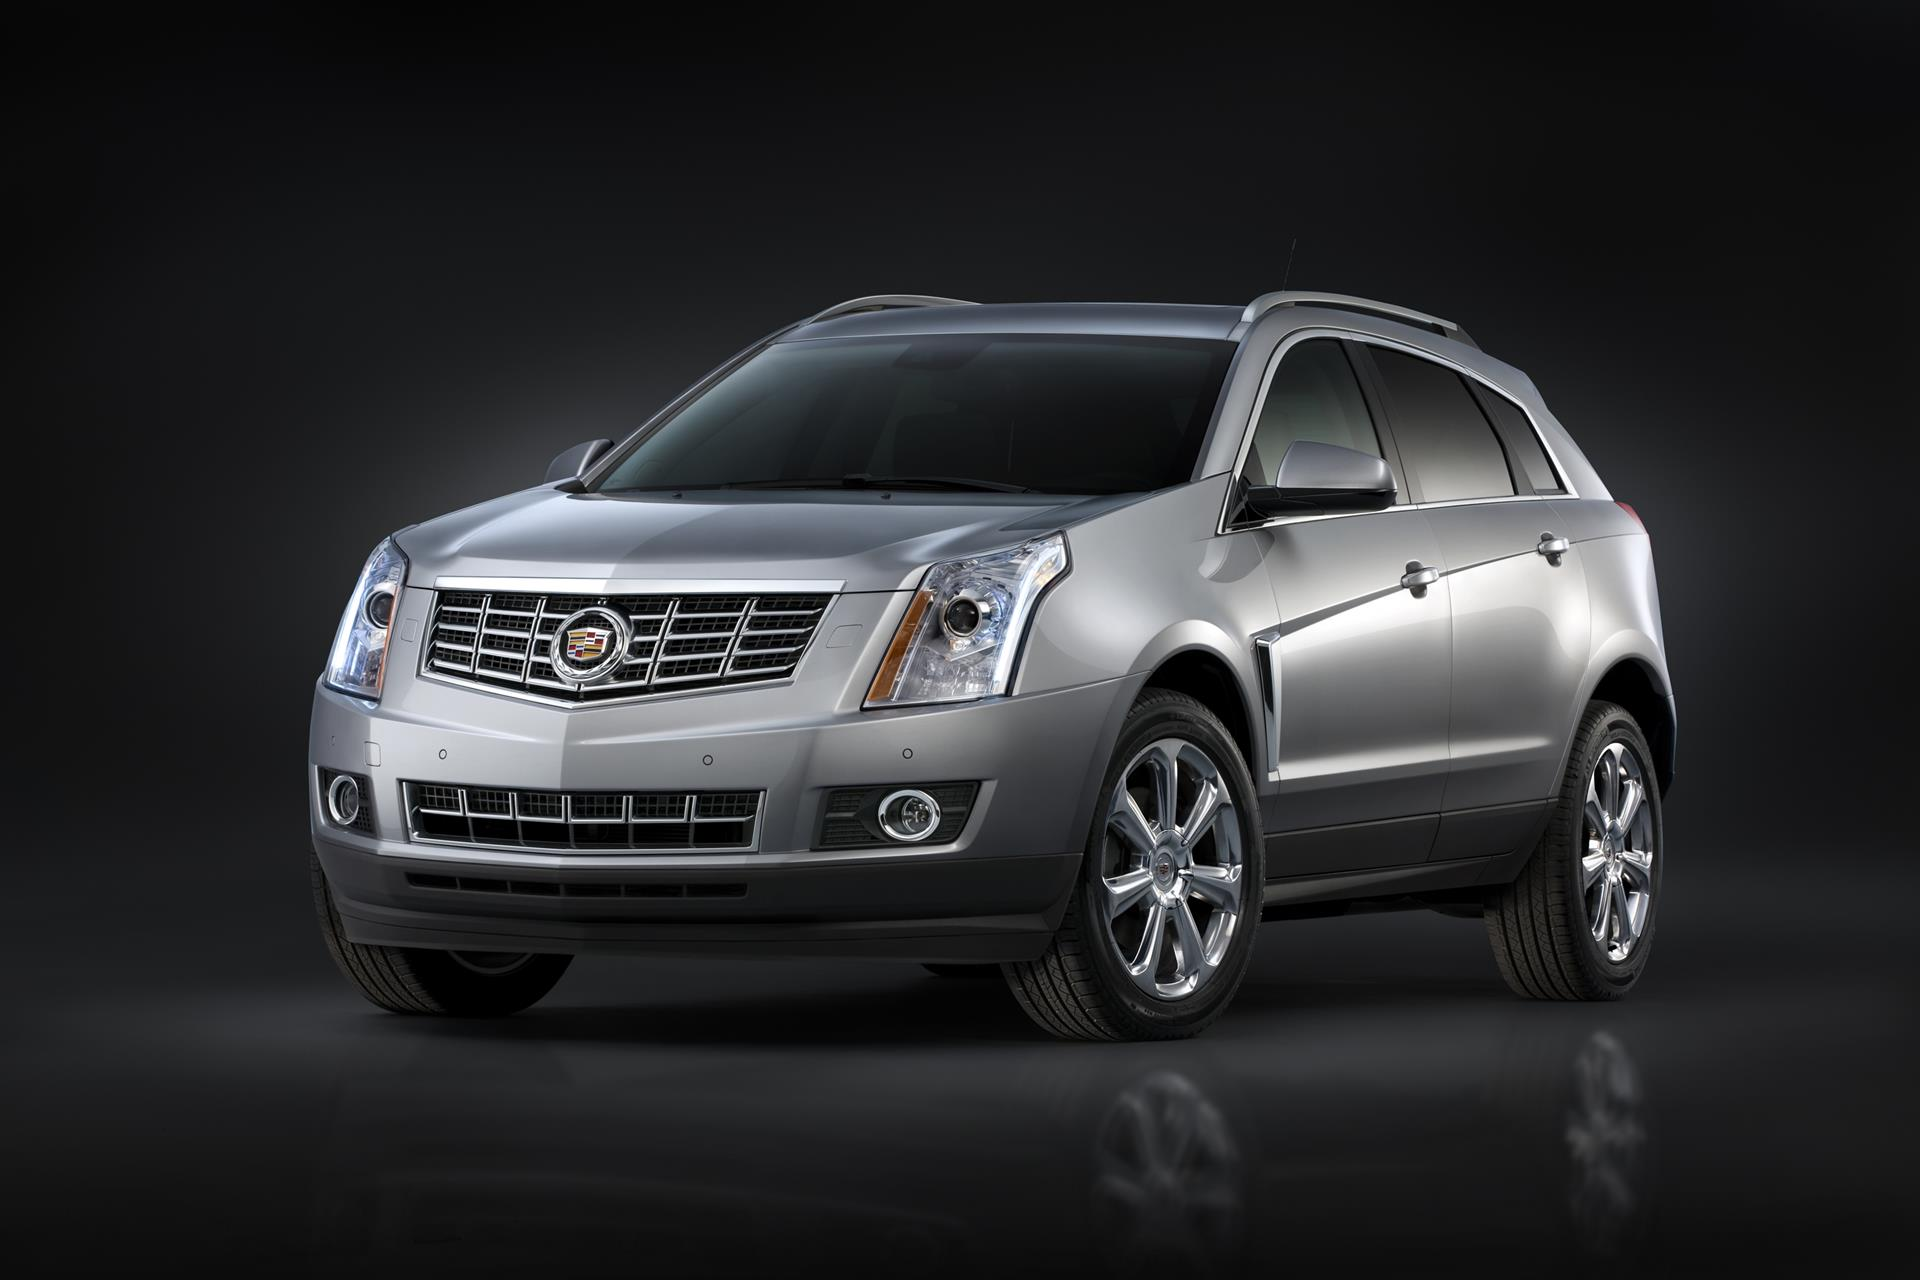 2016 cadillac srx. Black Bedroom Furniture Sets. Home Design Ideas